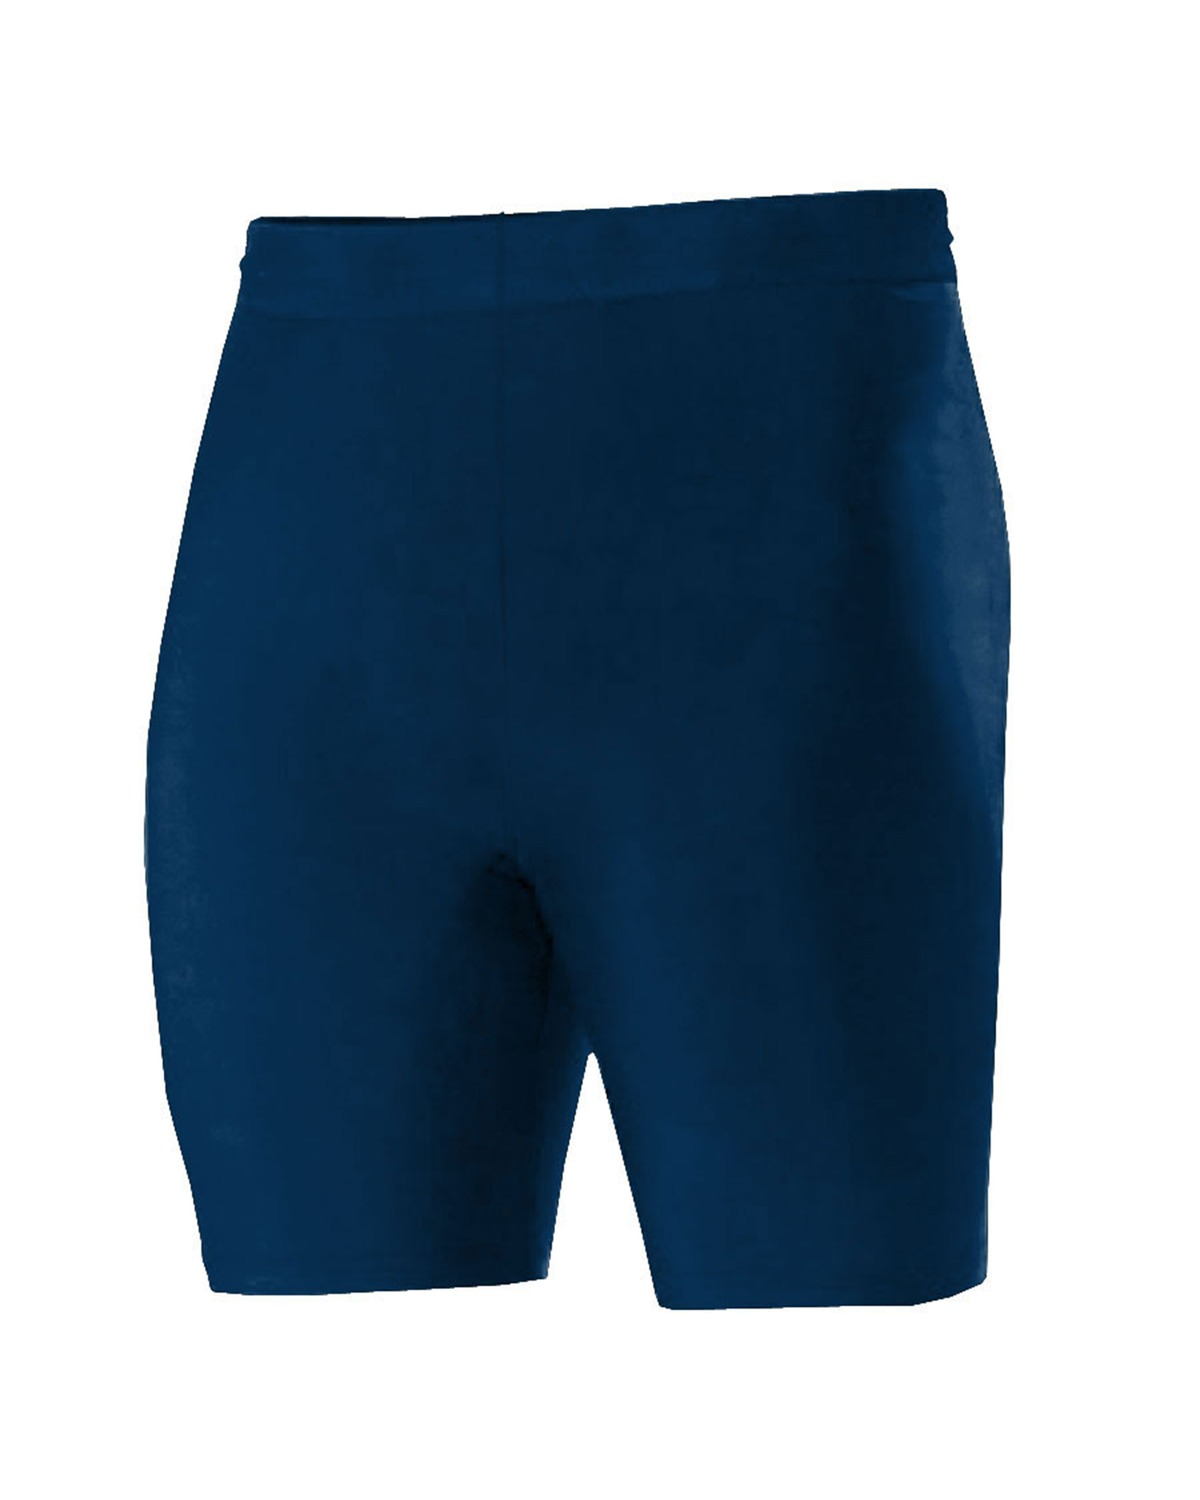 A4 Drop Ship - N5259 Adult Eight Inch Inseam Compression ...